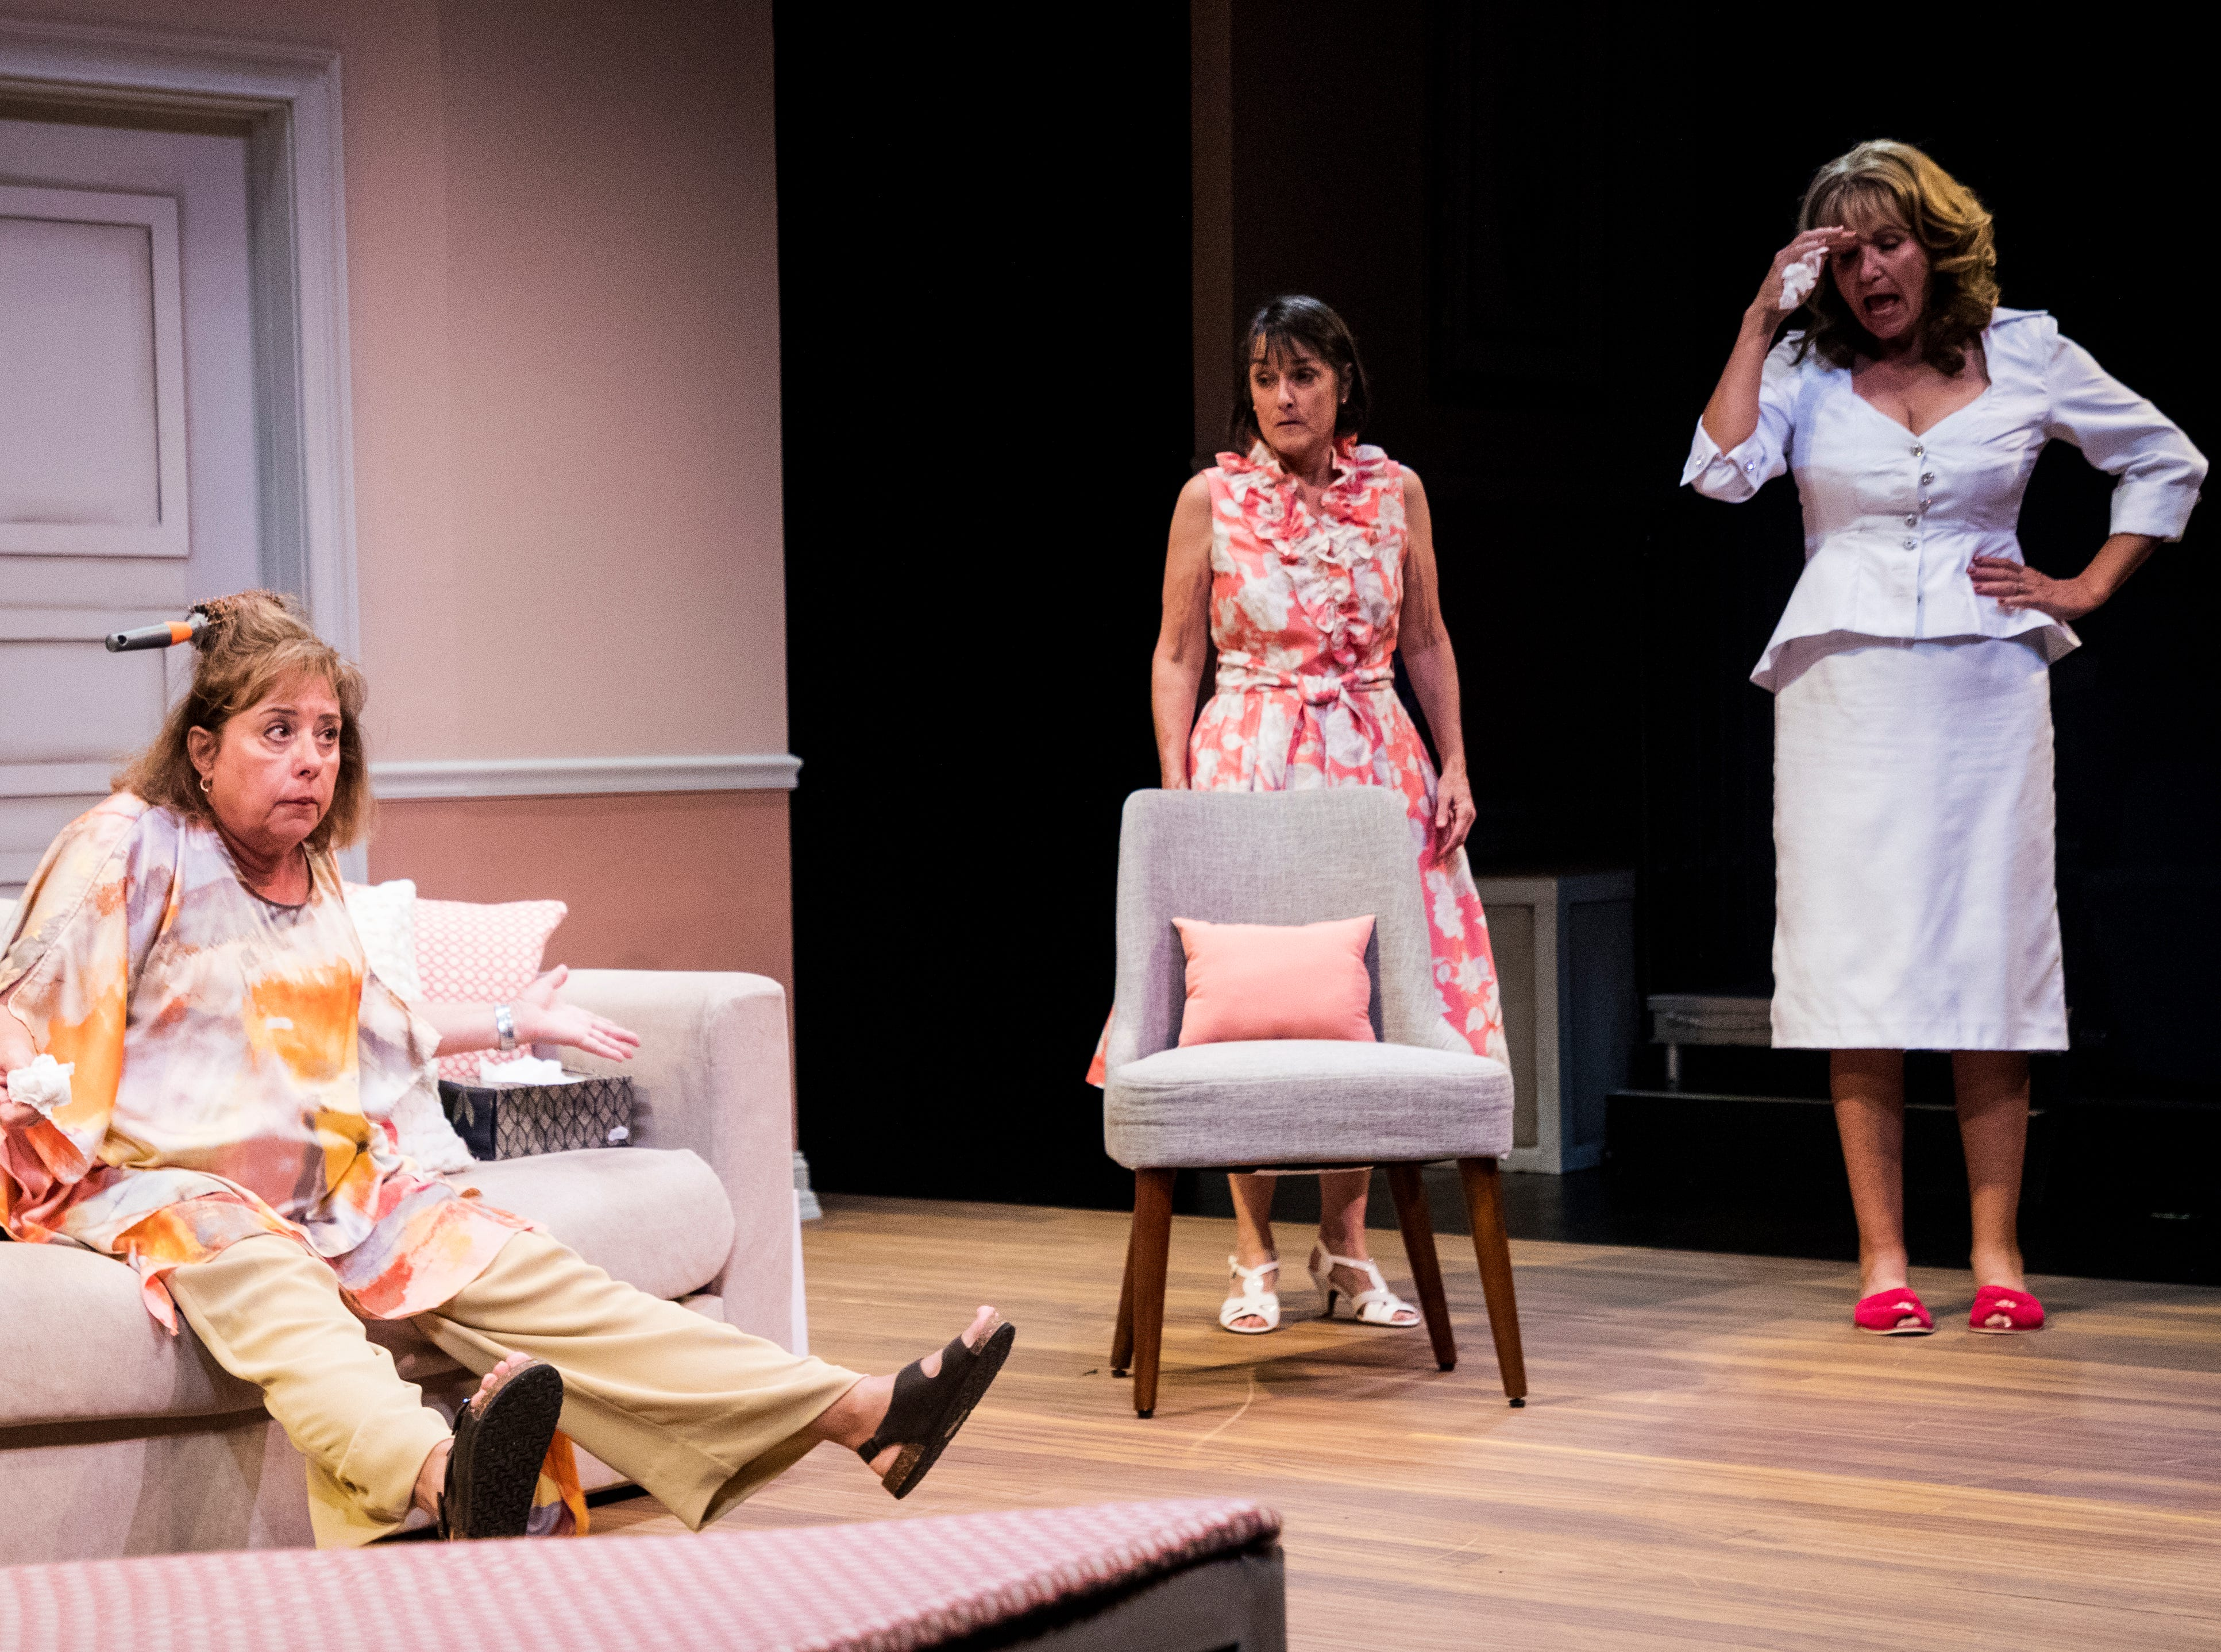 From left, Linda Mizeur playing Charlie, Judy Scribner playing Libby Ruth and Pamela Austin playing Monette act out a scene during a dress rehearsel in Always a Bridesmaid. It is playing at the Tobye Theater at Sugden Community Theater on 5th Ave. in Naples from March 27-April 20.